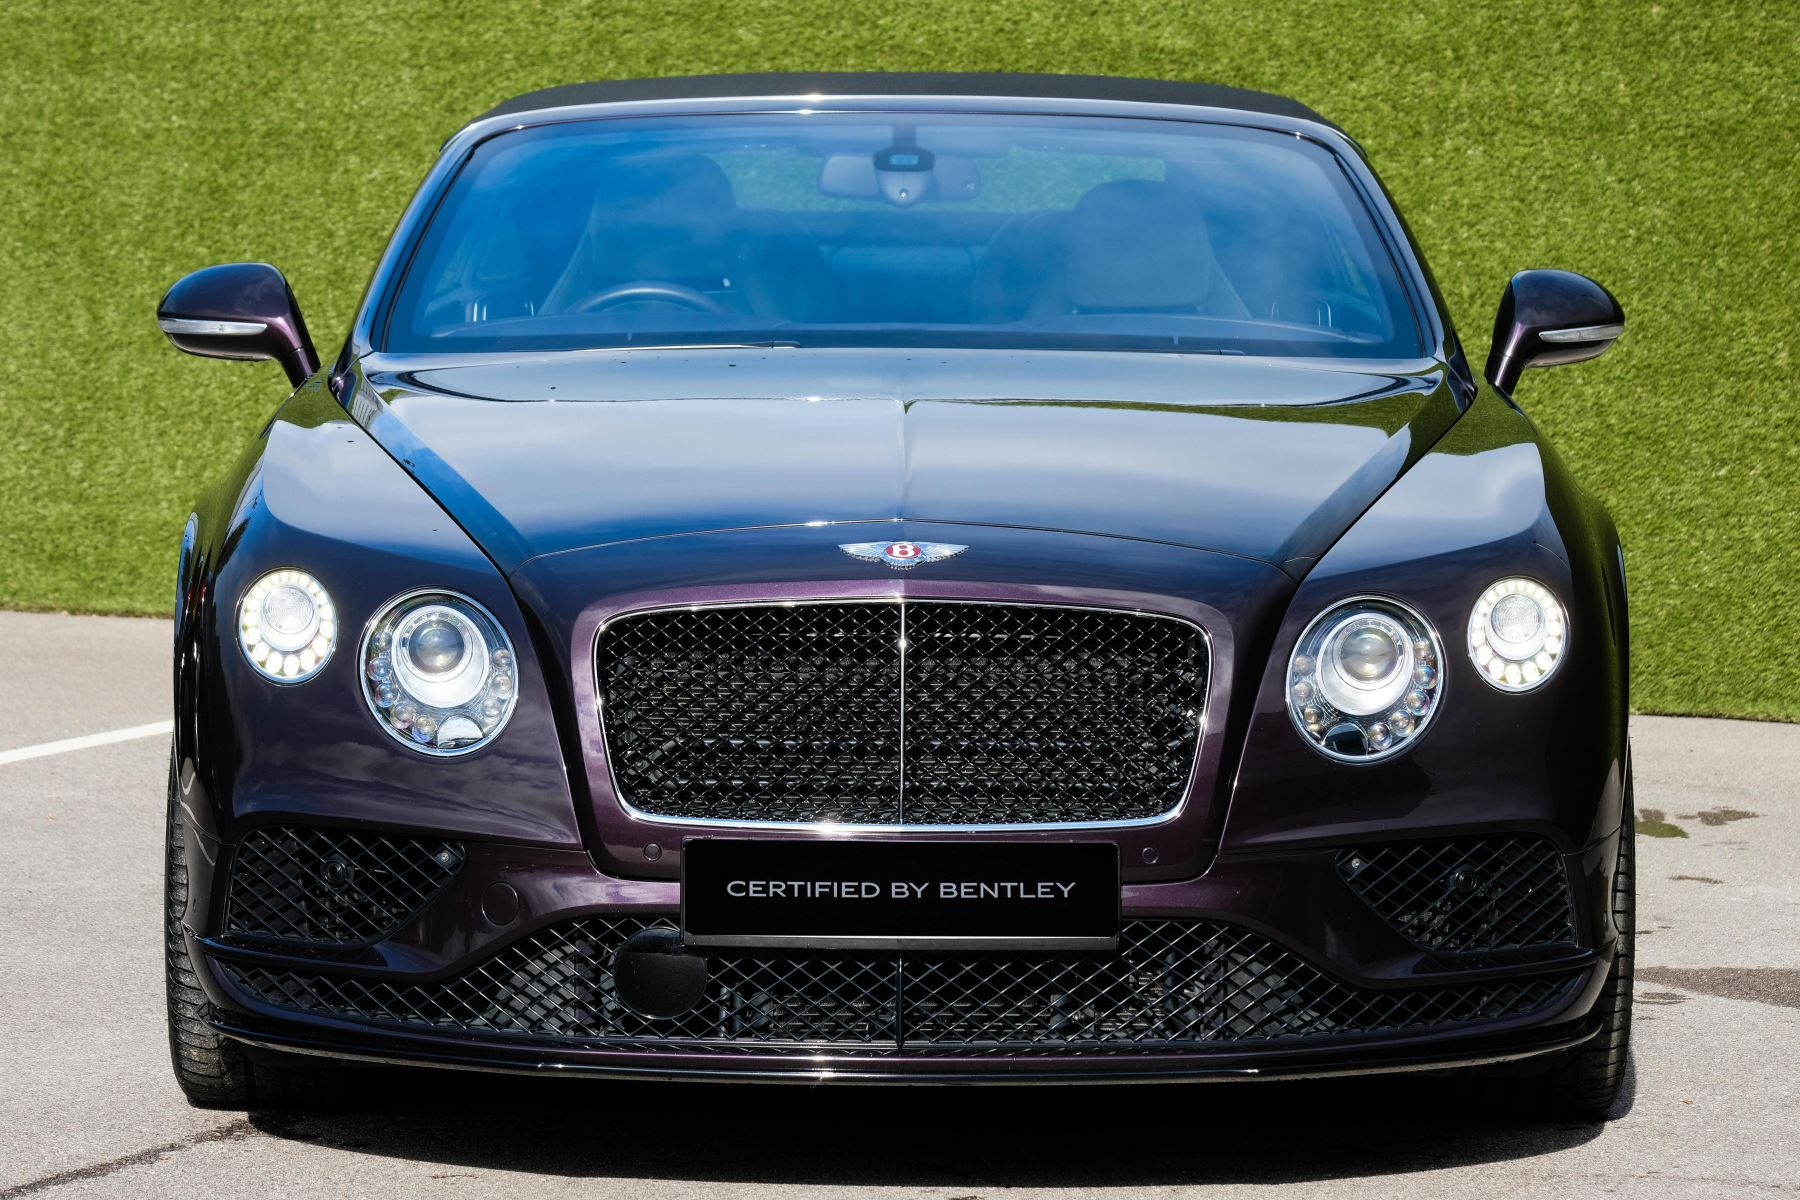 Bentley Continental GTC 4.0 V8 S Mulliner Driving Spec - Premier and All Seasons Specification image 2